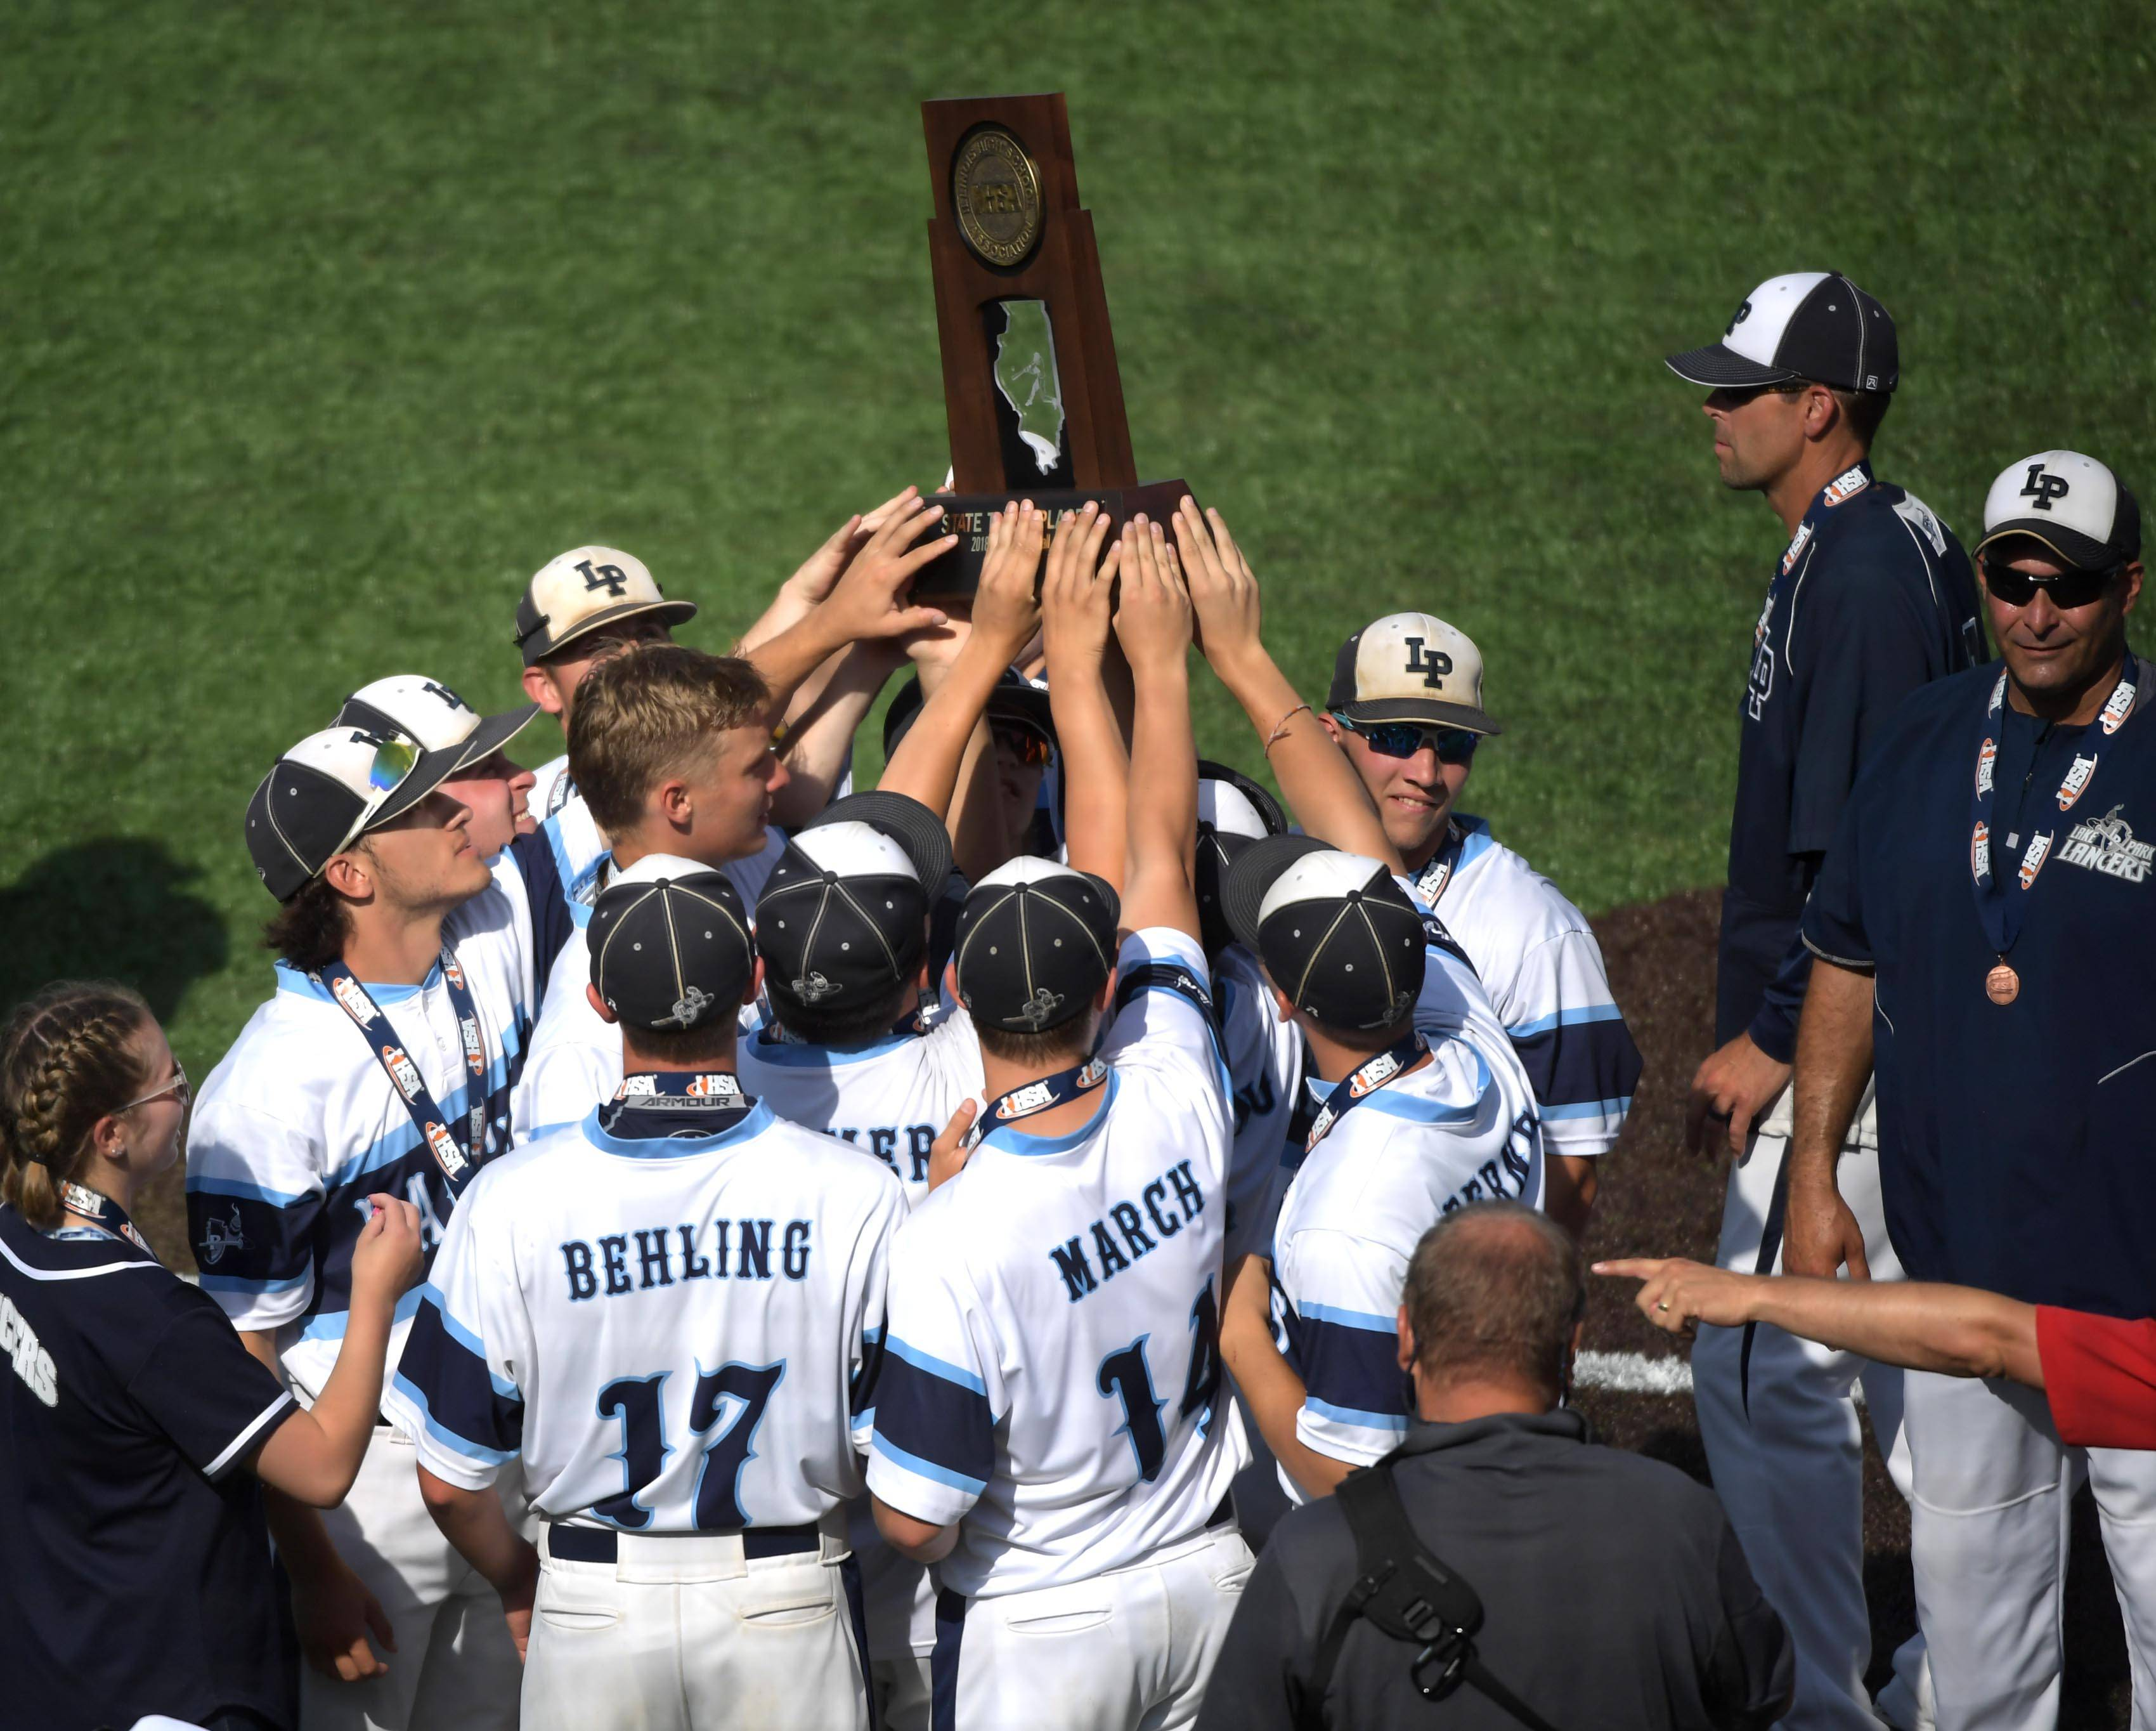 Lake Park holds it's third place trophy after defeating Sandburg in the Class 4A state baseball third place game at Route 66 Stadium in Joliet Saturday.